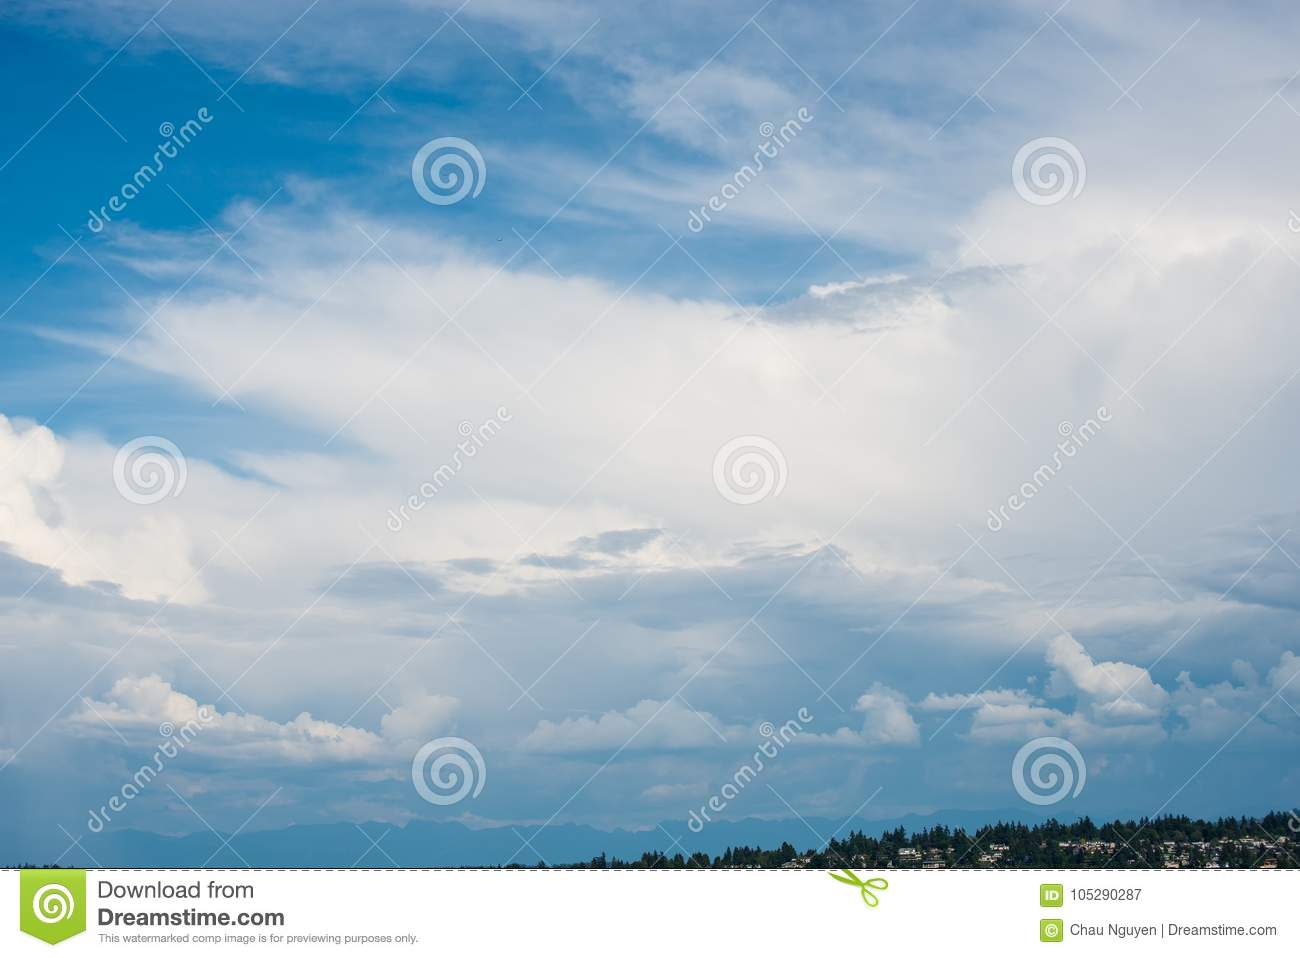 Beautiful clear blue sky with layers of white clouds flying by